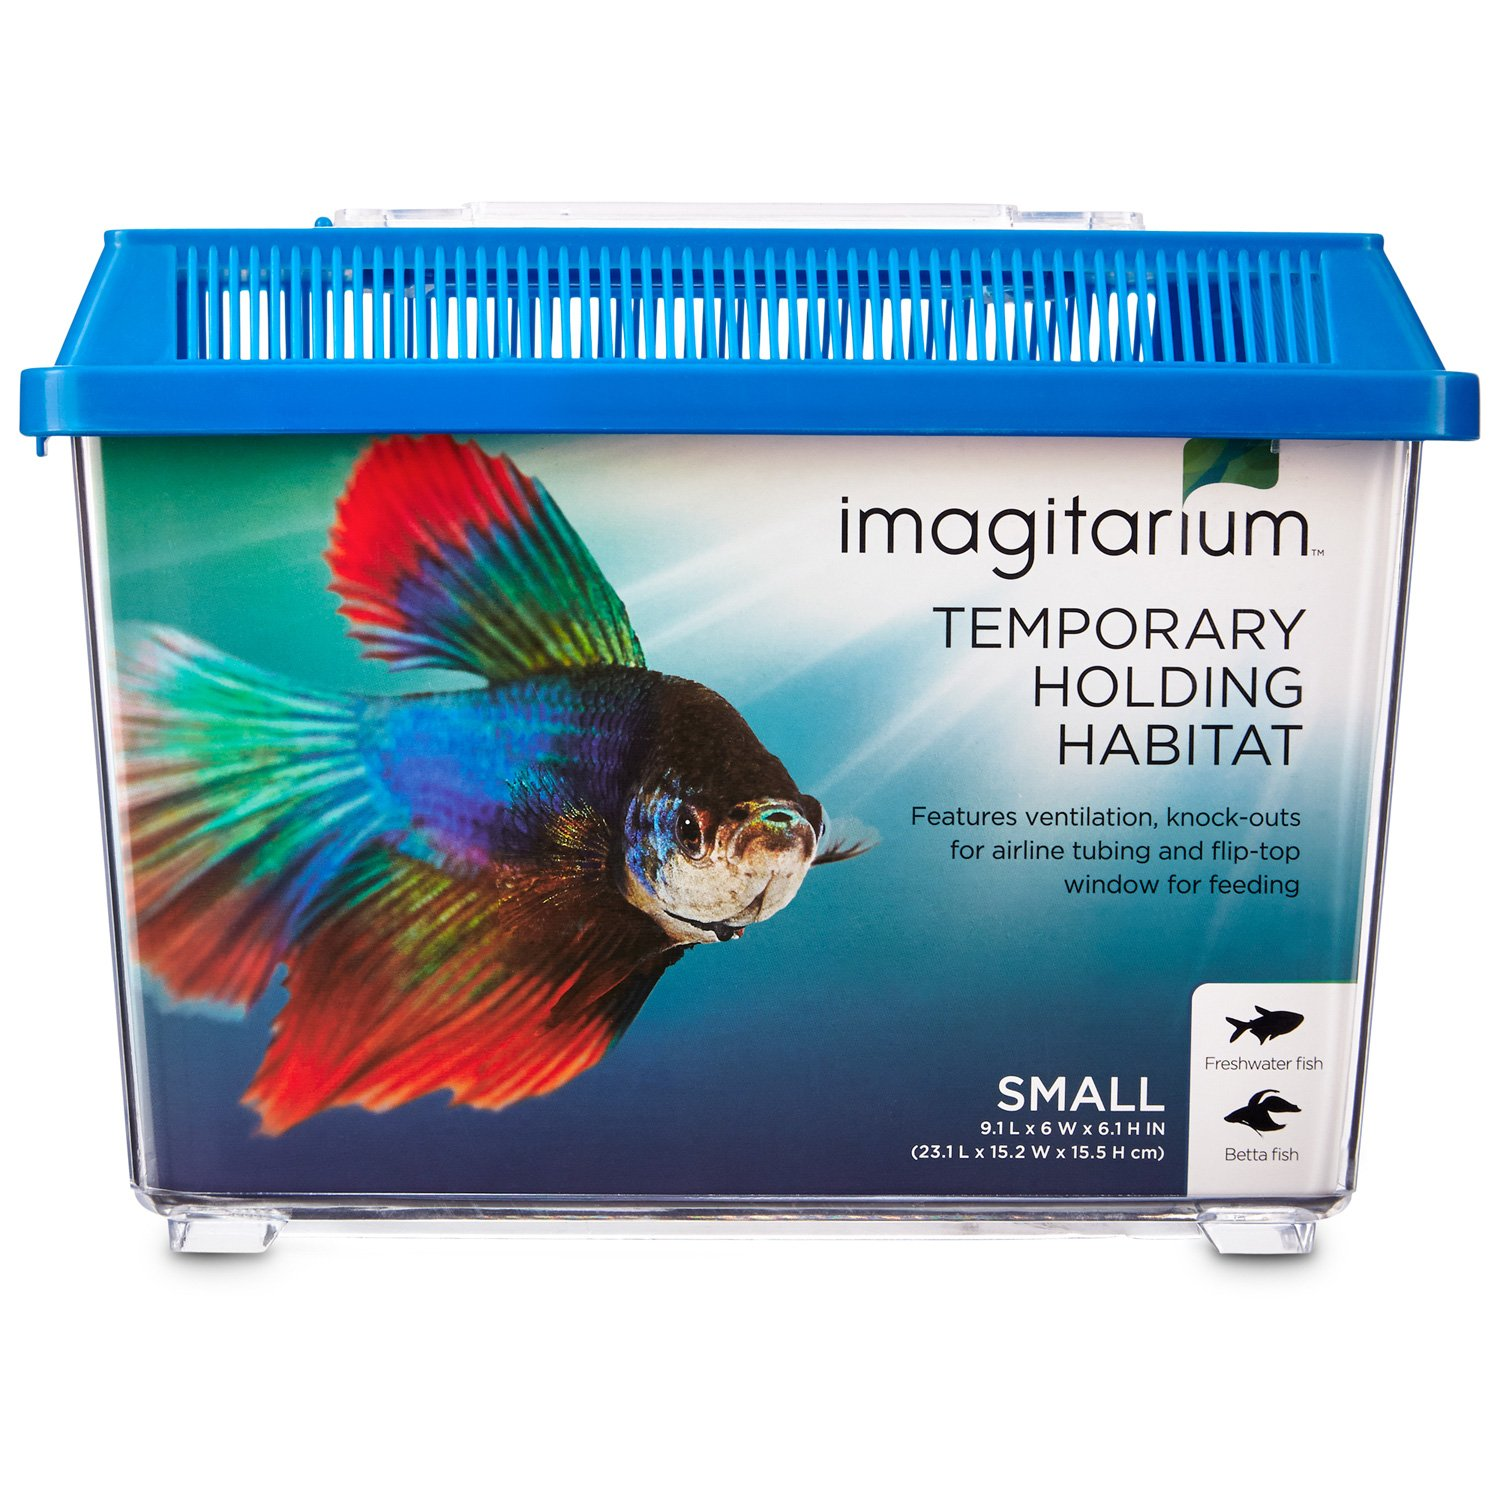 Imagitarium Pet Keeper for Aquarium Fish, Small | Petco | Tuggl